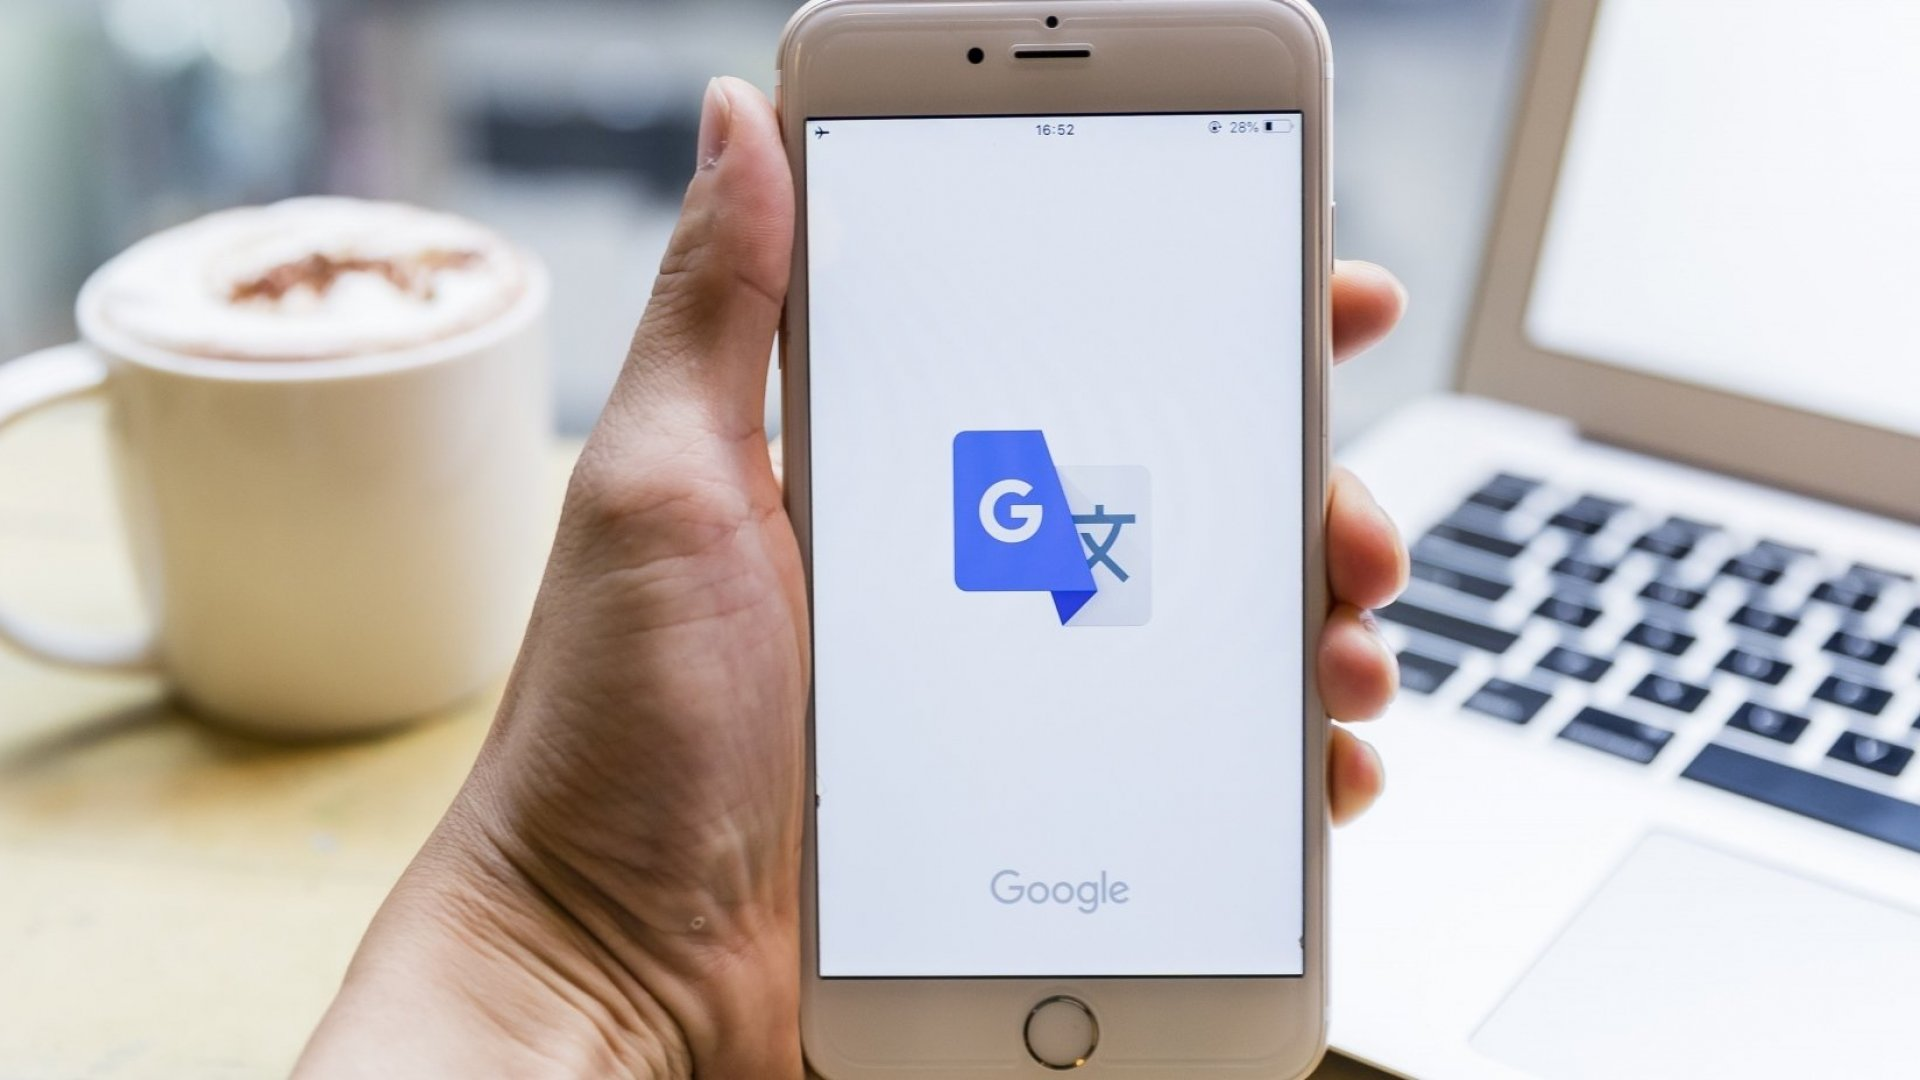 Google's Interpreter Mode Is the Real-Time Translation Tool That'll Help Global Business Travelers Get Things Done